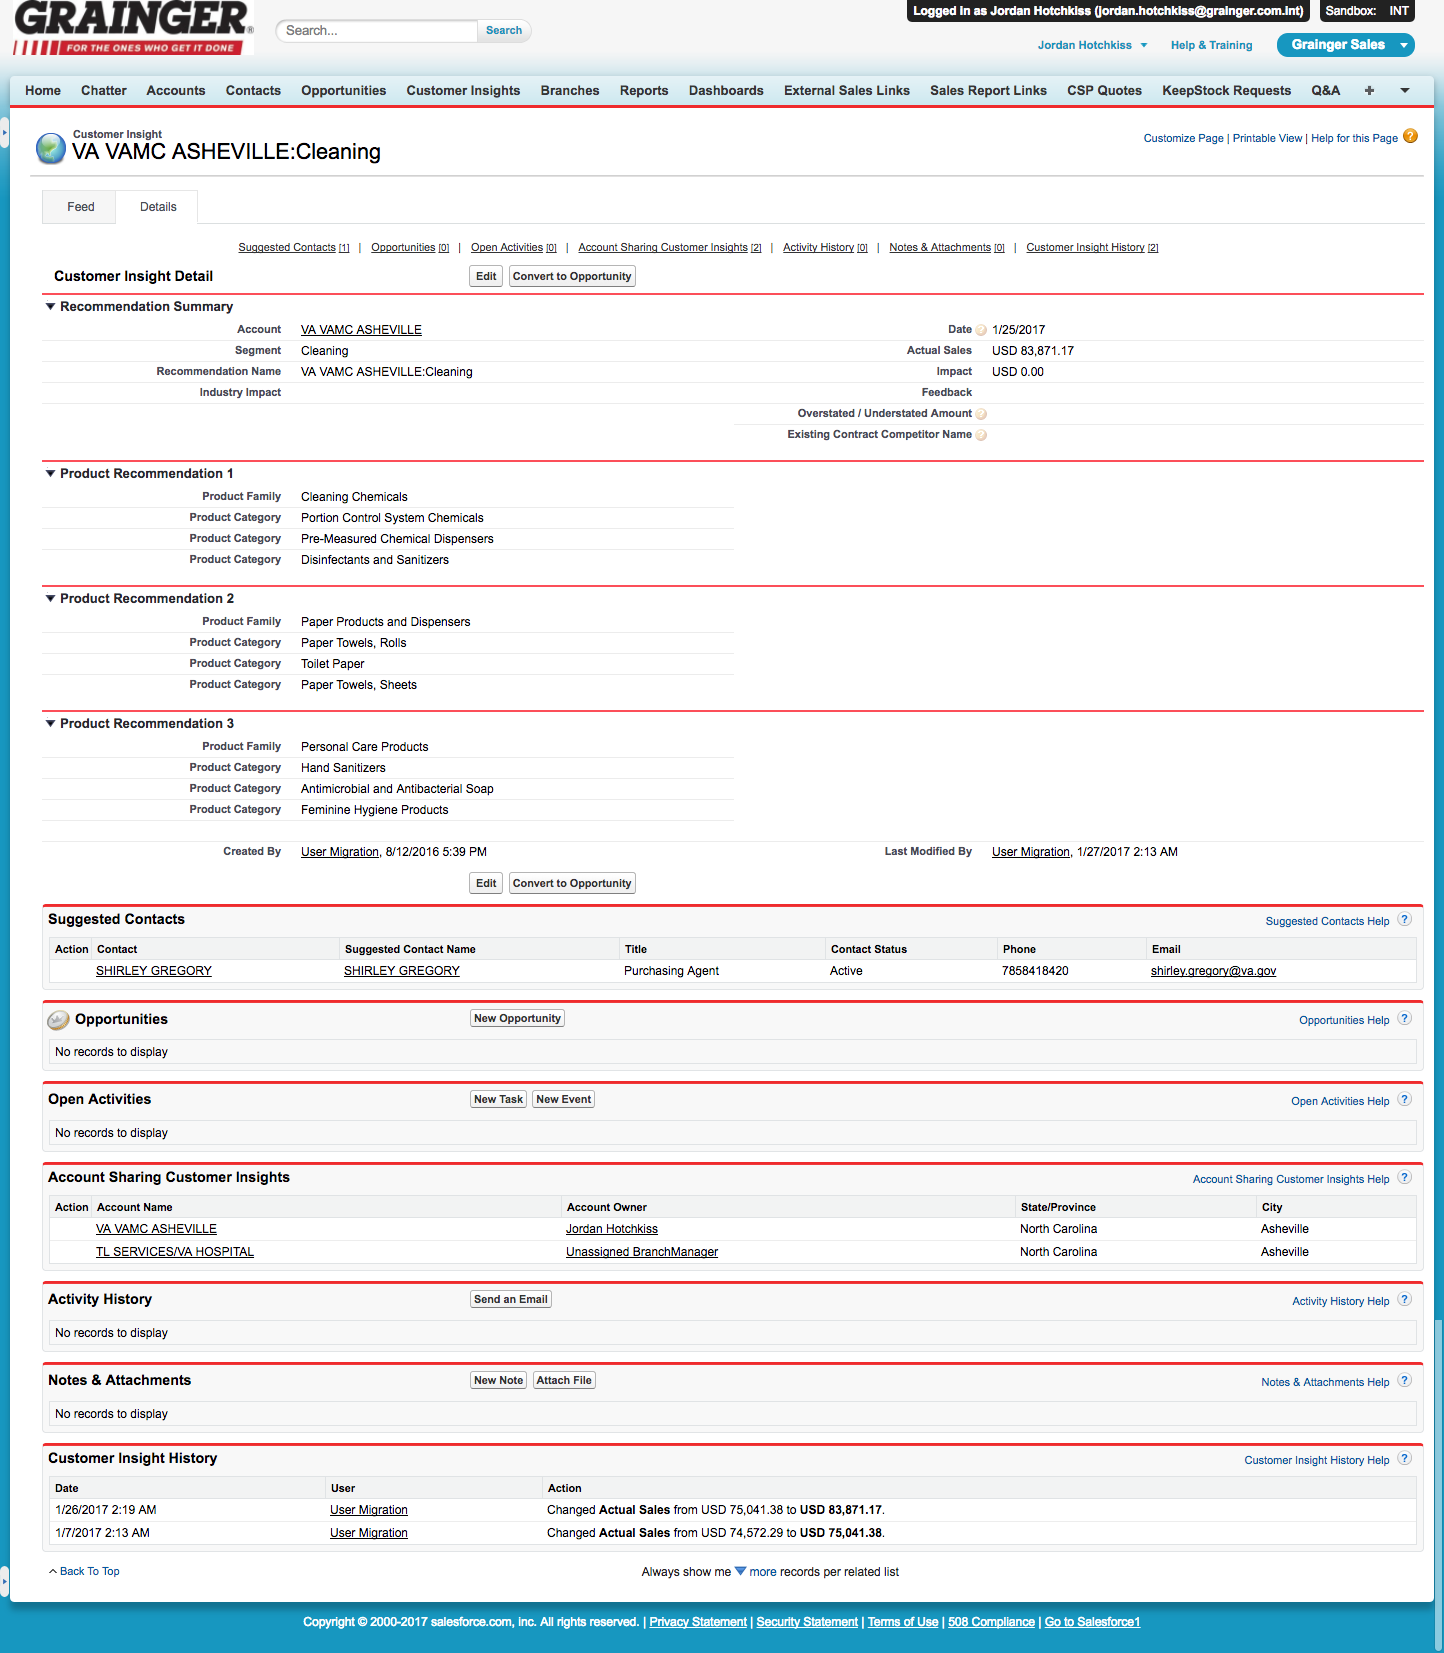 Insights Detail View - Salesforce Classic